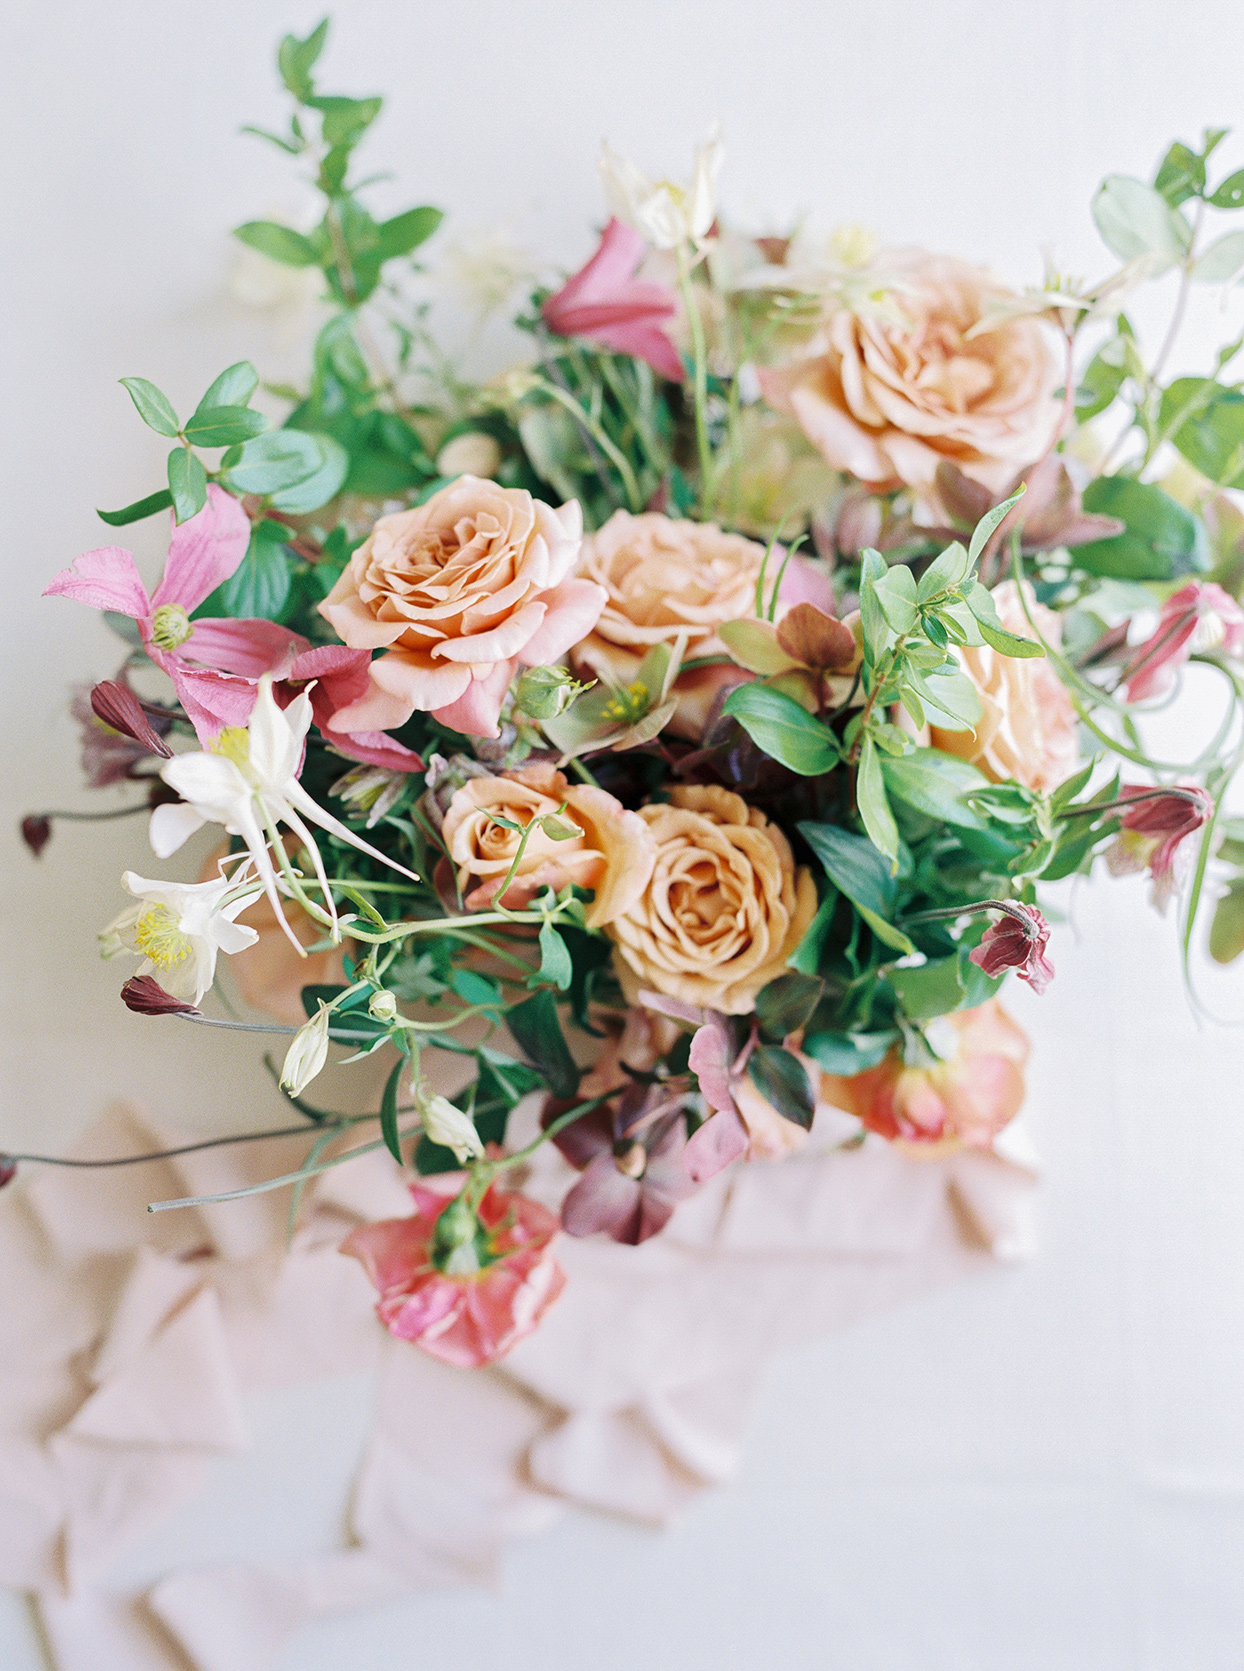 thuy kahn wedding floral bouquet in warm colors